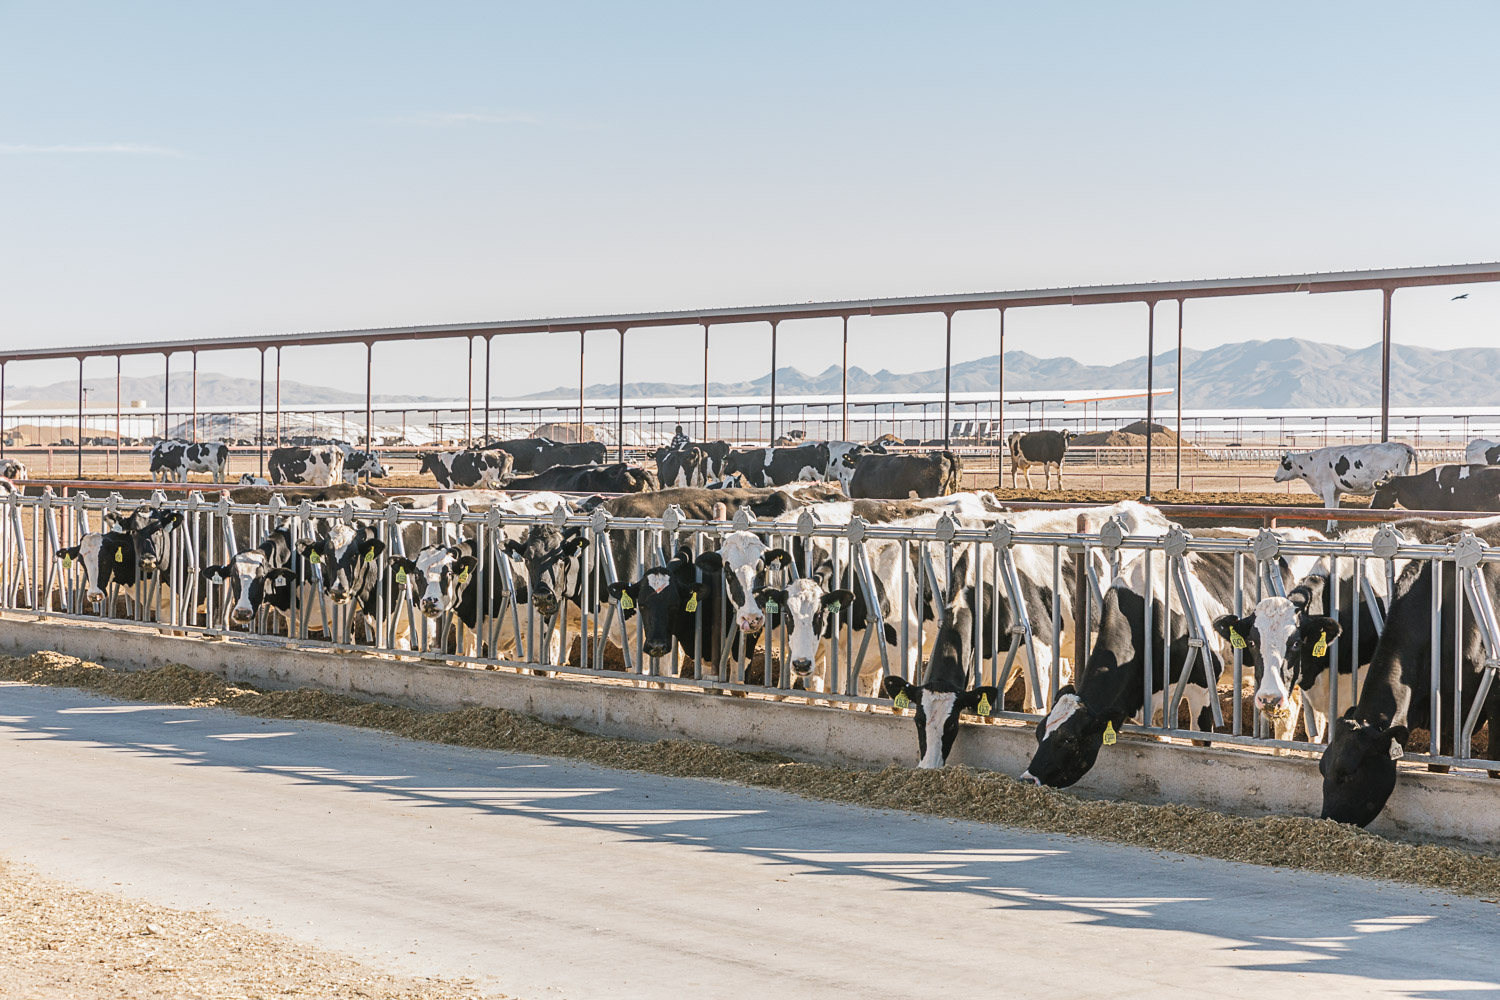 While Small Dairy Farms Shut Down This Mega Dairy Is Shipping Milk To China Civil Eats